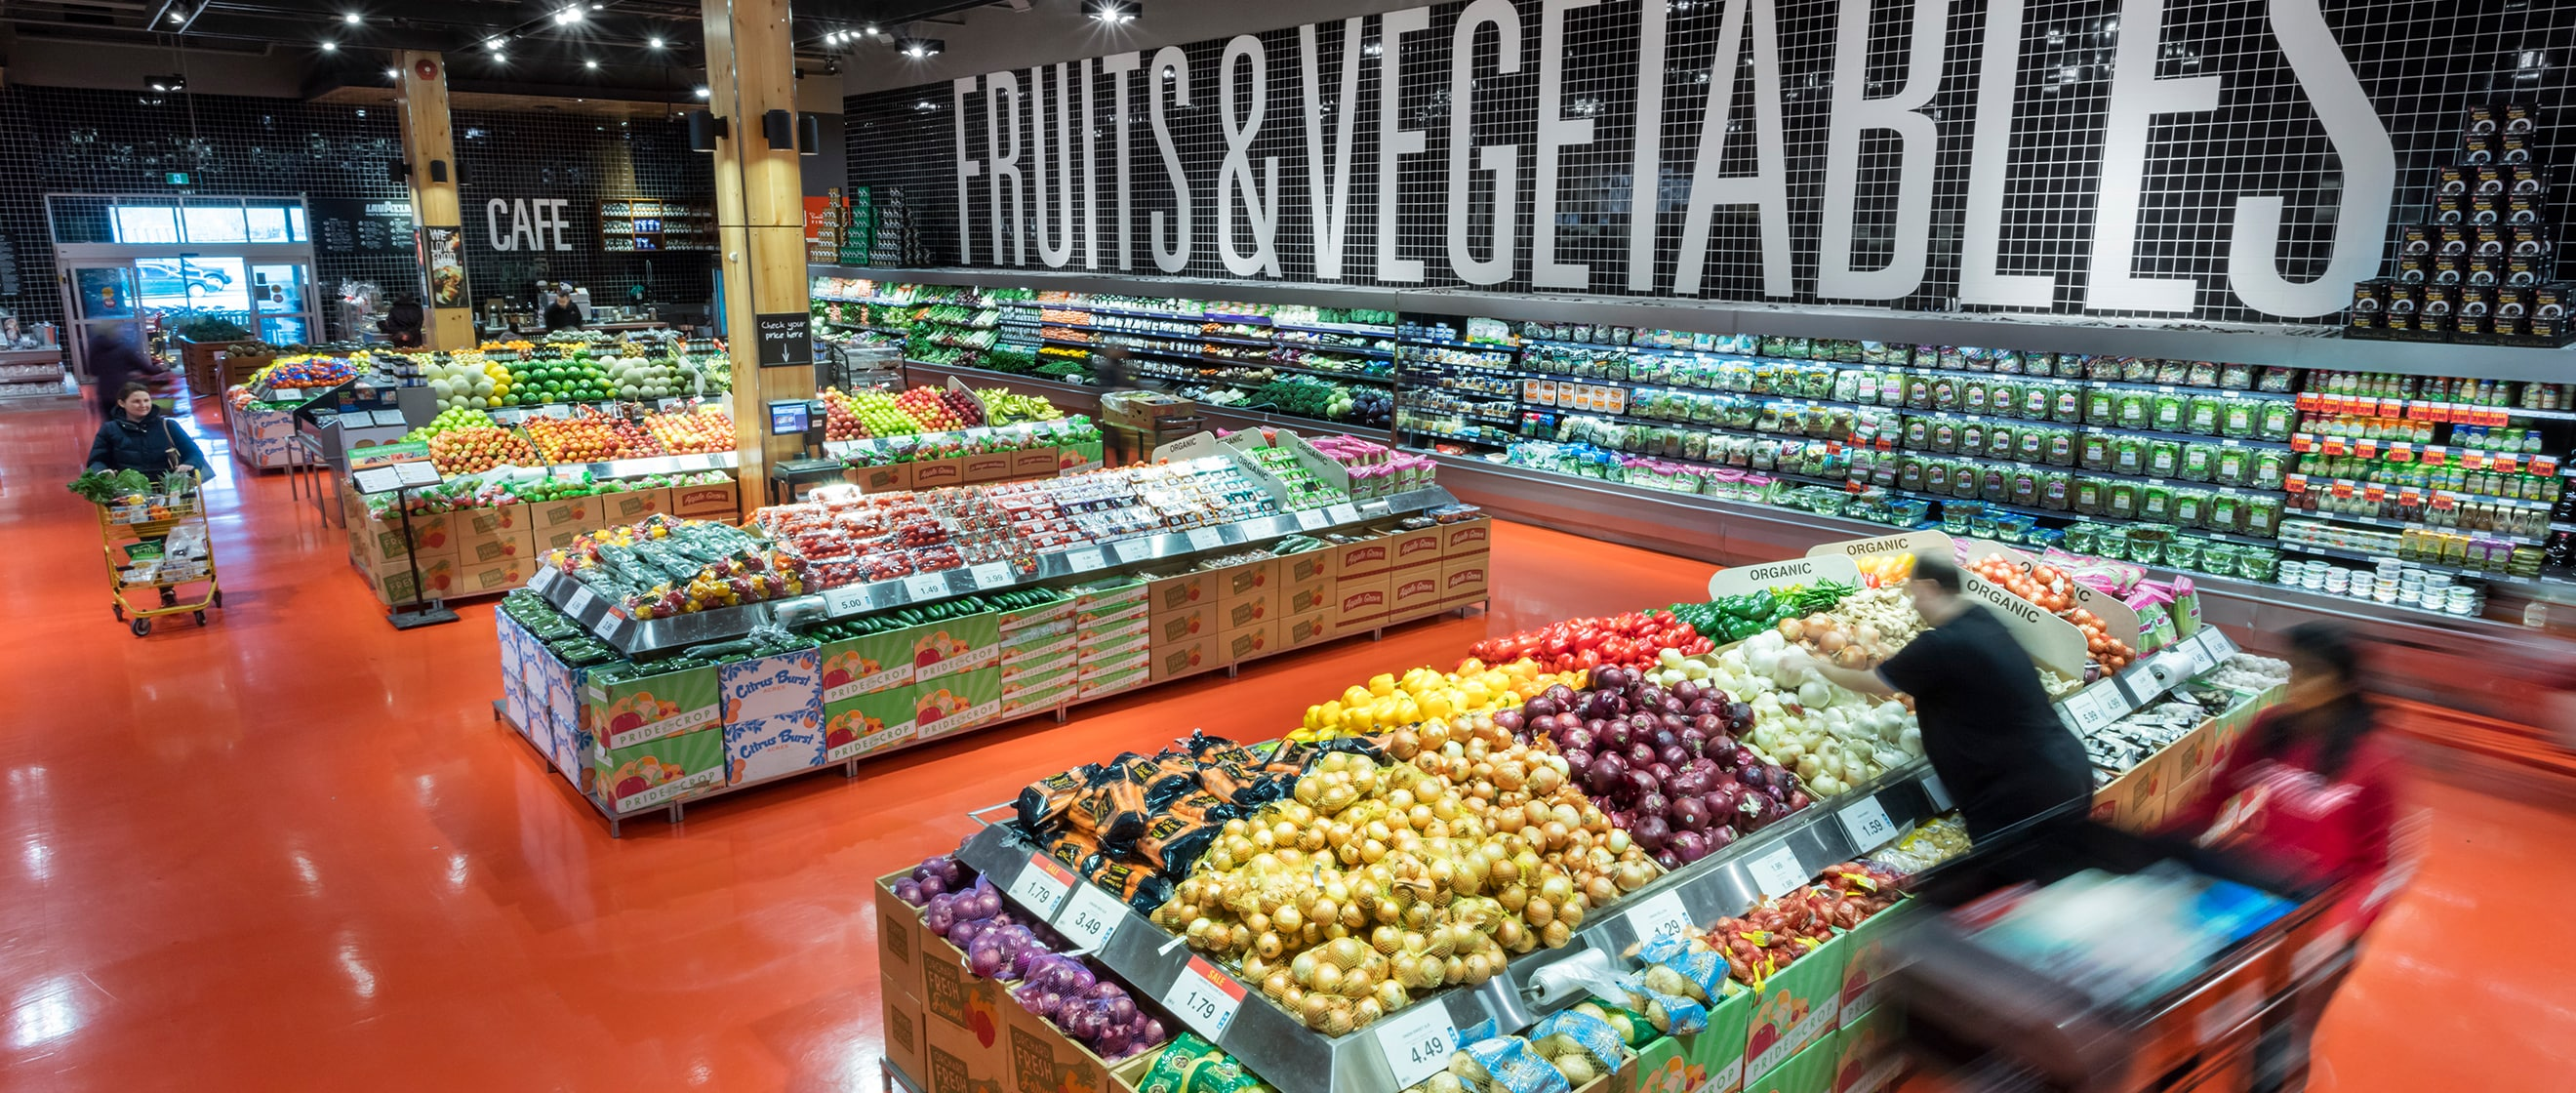 Fruits and vegetables section of a grocery store with fresh produce and people shopping.